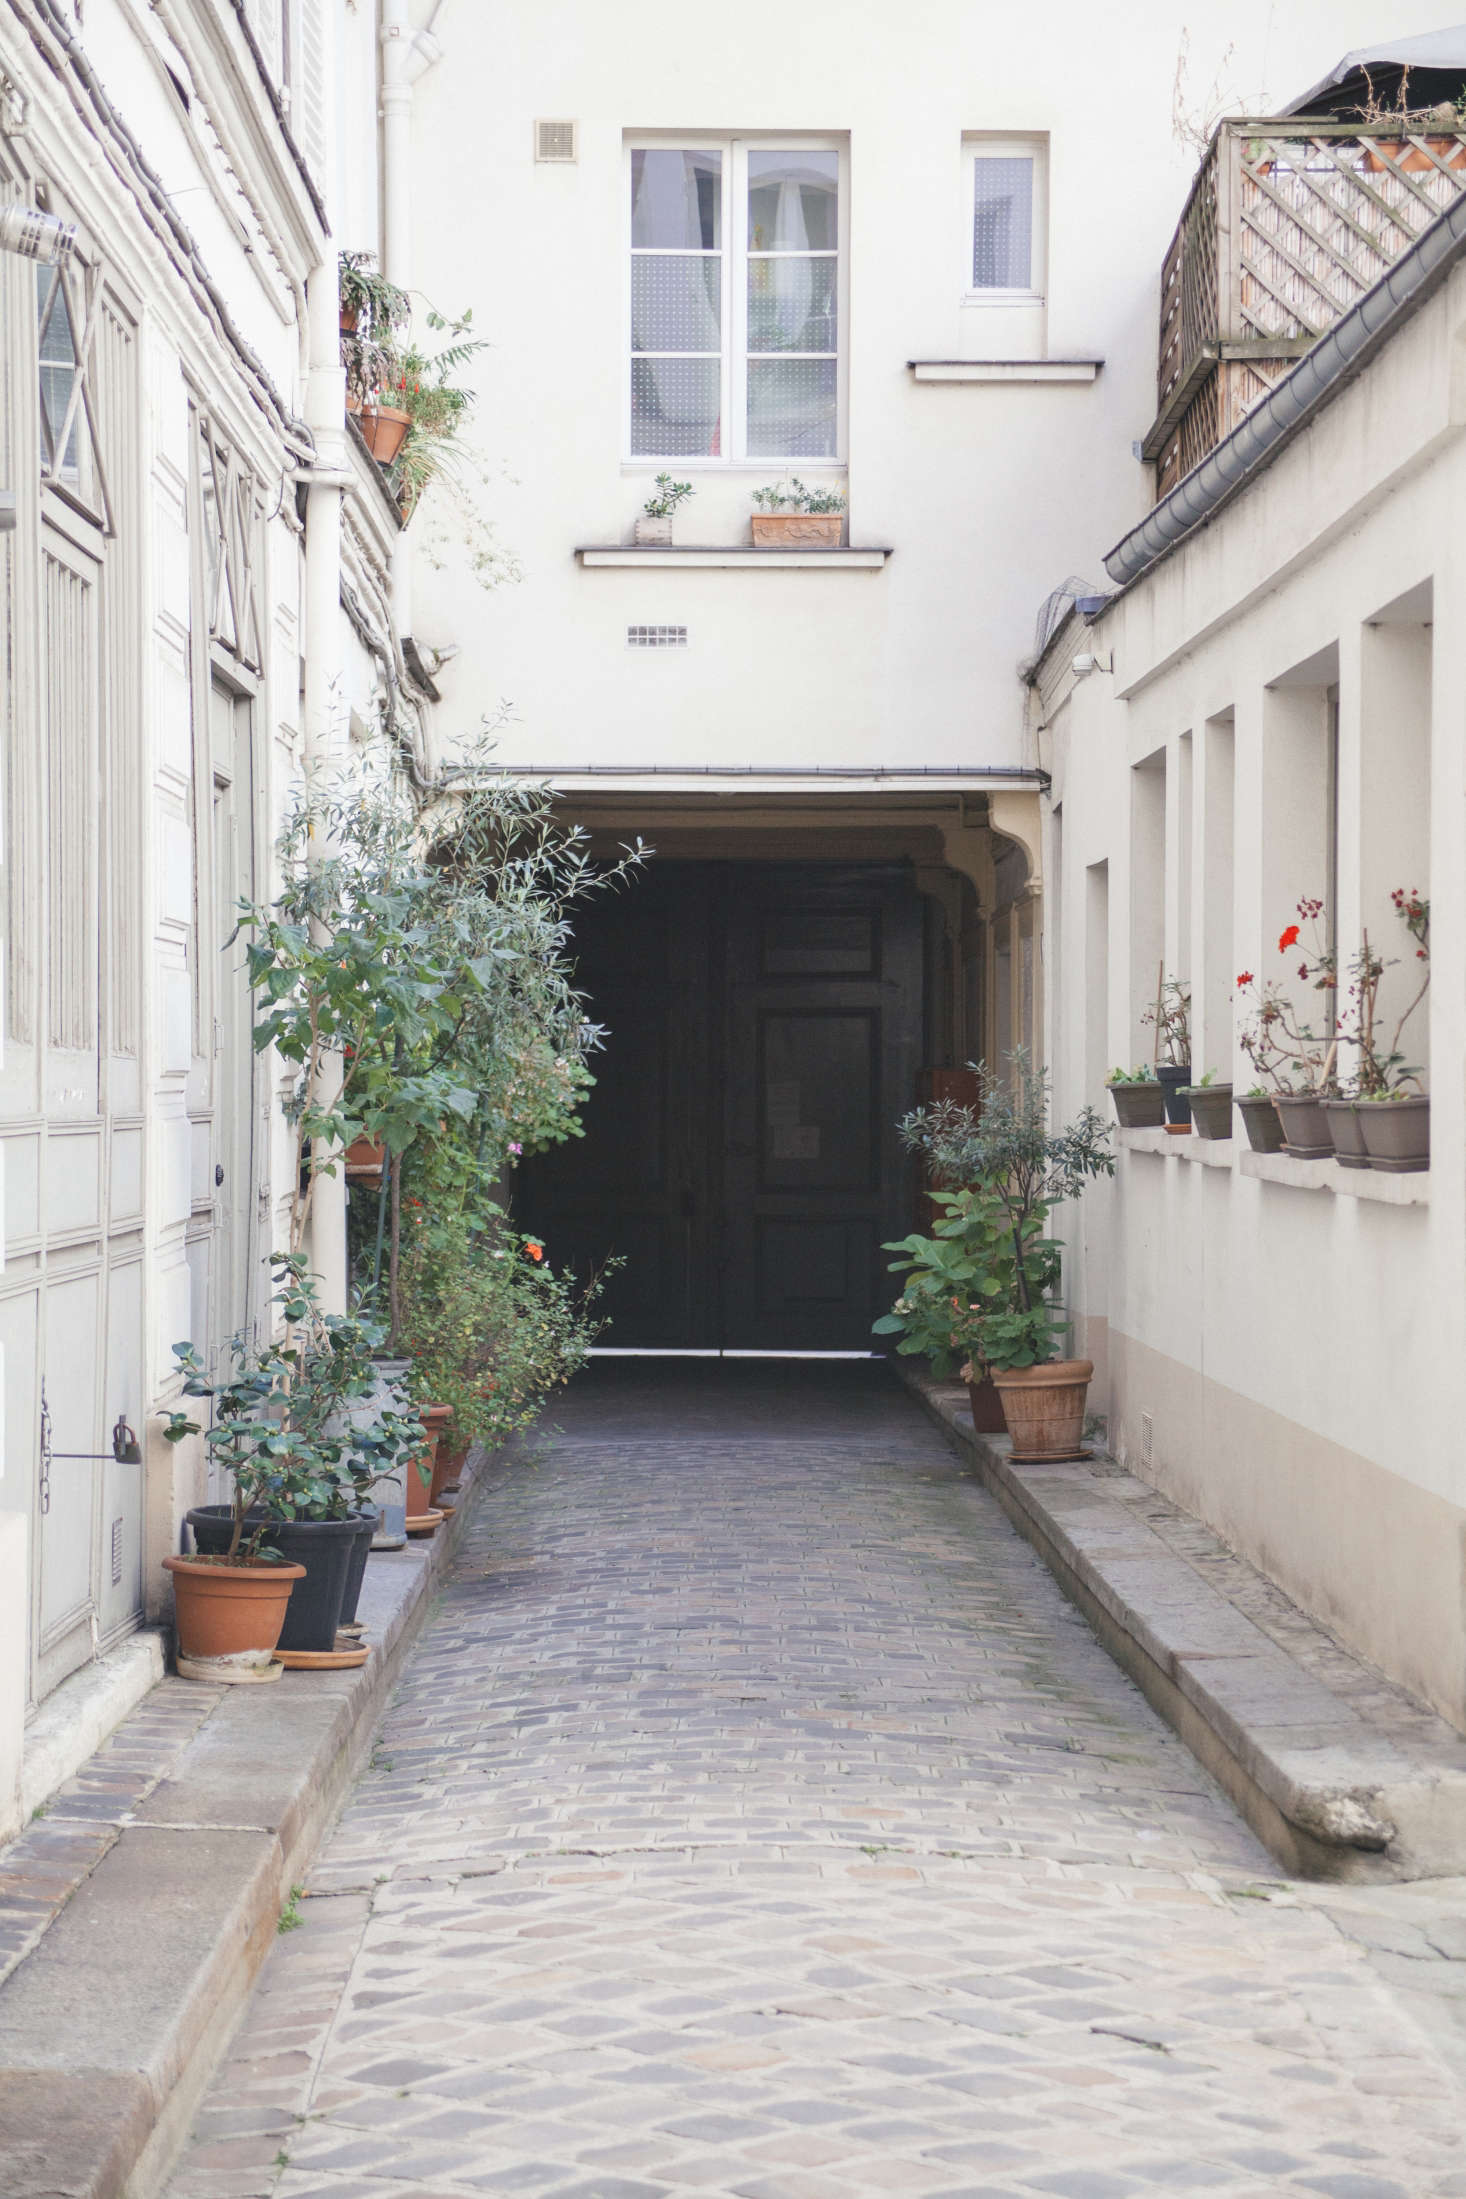 A view of the gated courtyard shows how the modern Fassio-Viaud structure to the rear contrasts with the traditional, historic Parisian architecture.